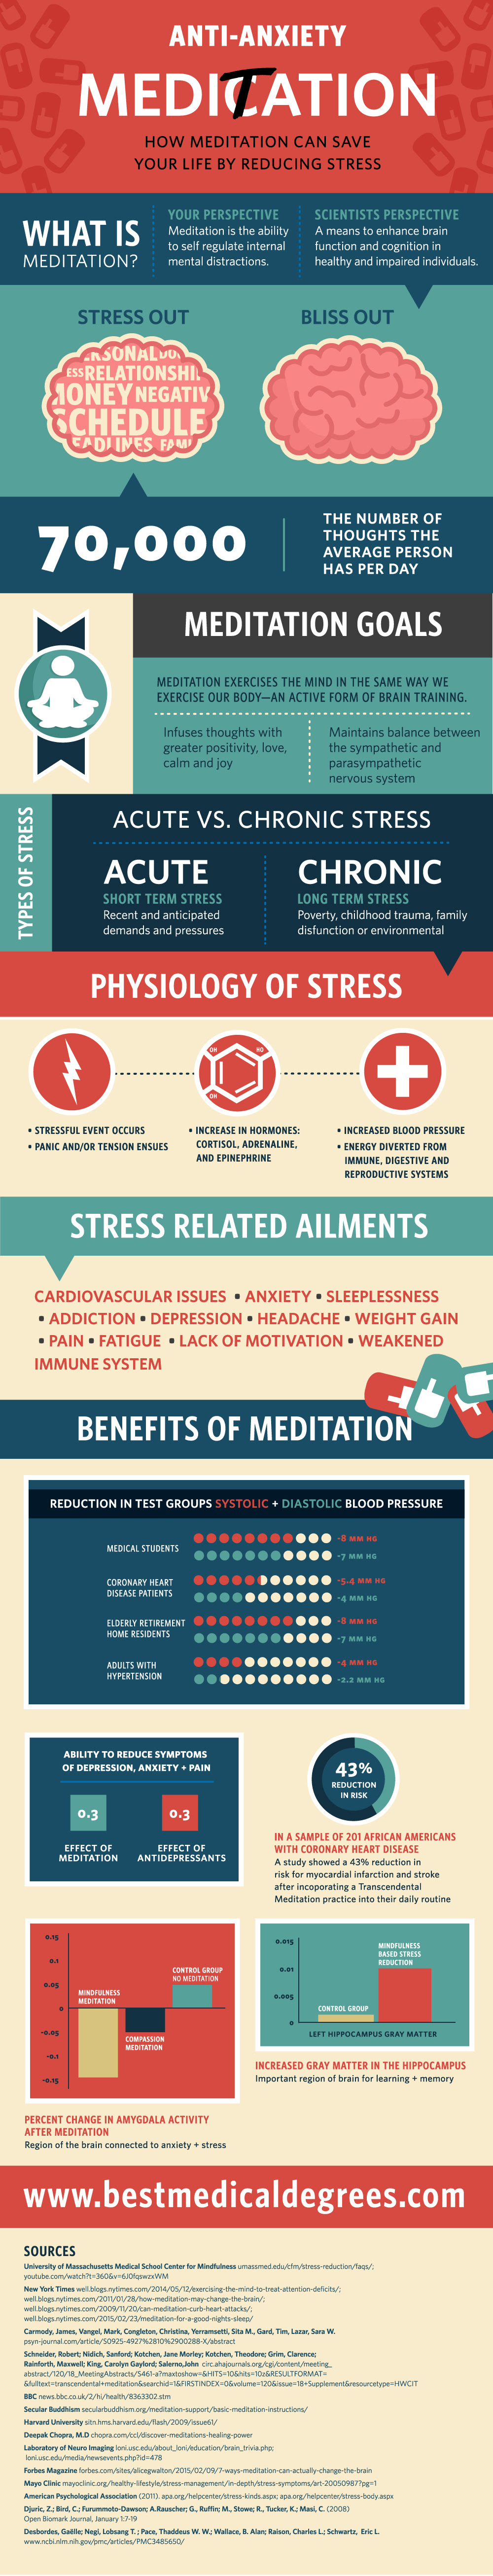 How Meditation Can Save Your Life By Reducing Stress